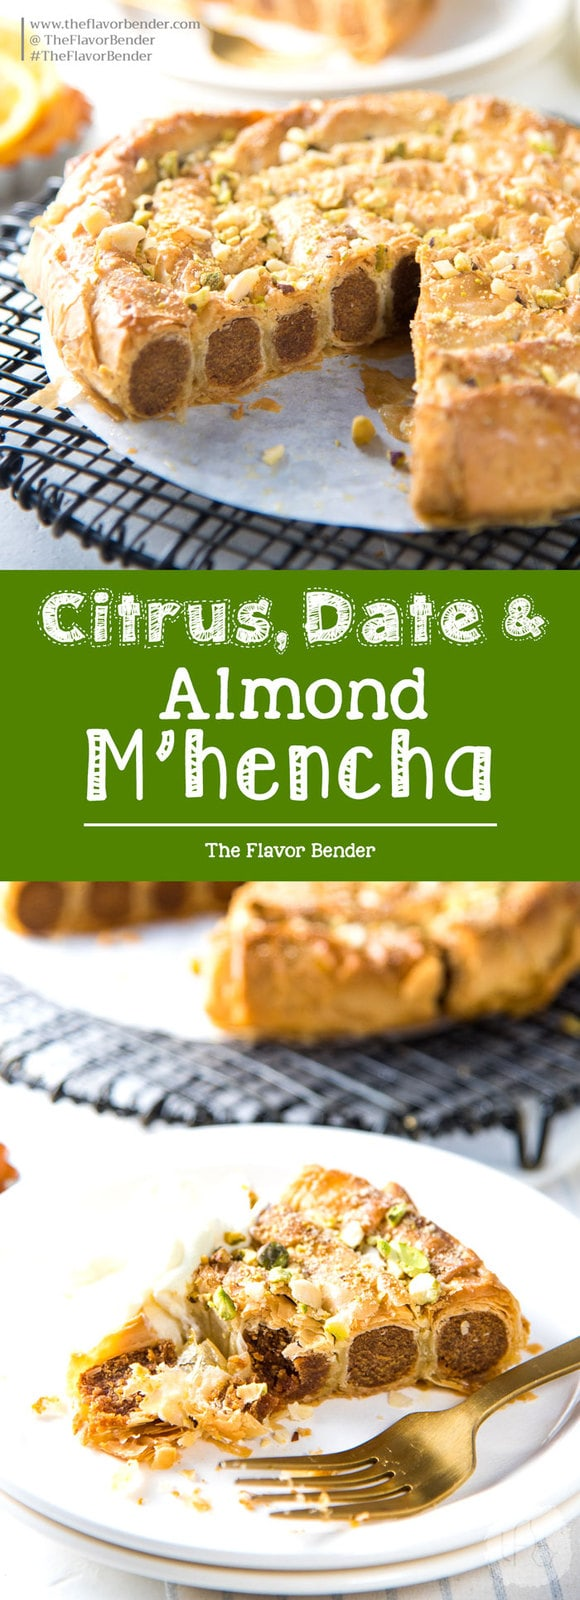 Citrus, Date and Almond M'hencha with Orange blossom honey syrup - A delicious and exotic Moroccan delicacy! A sweet date and almond paste wrapped in honey syrup soaked filo pastry.It tastes just as amazing as it looks! #FiloPastry #MoroccanDesserts #Mhencha